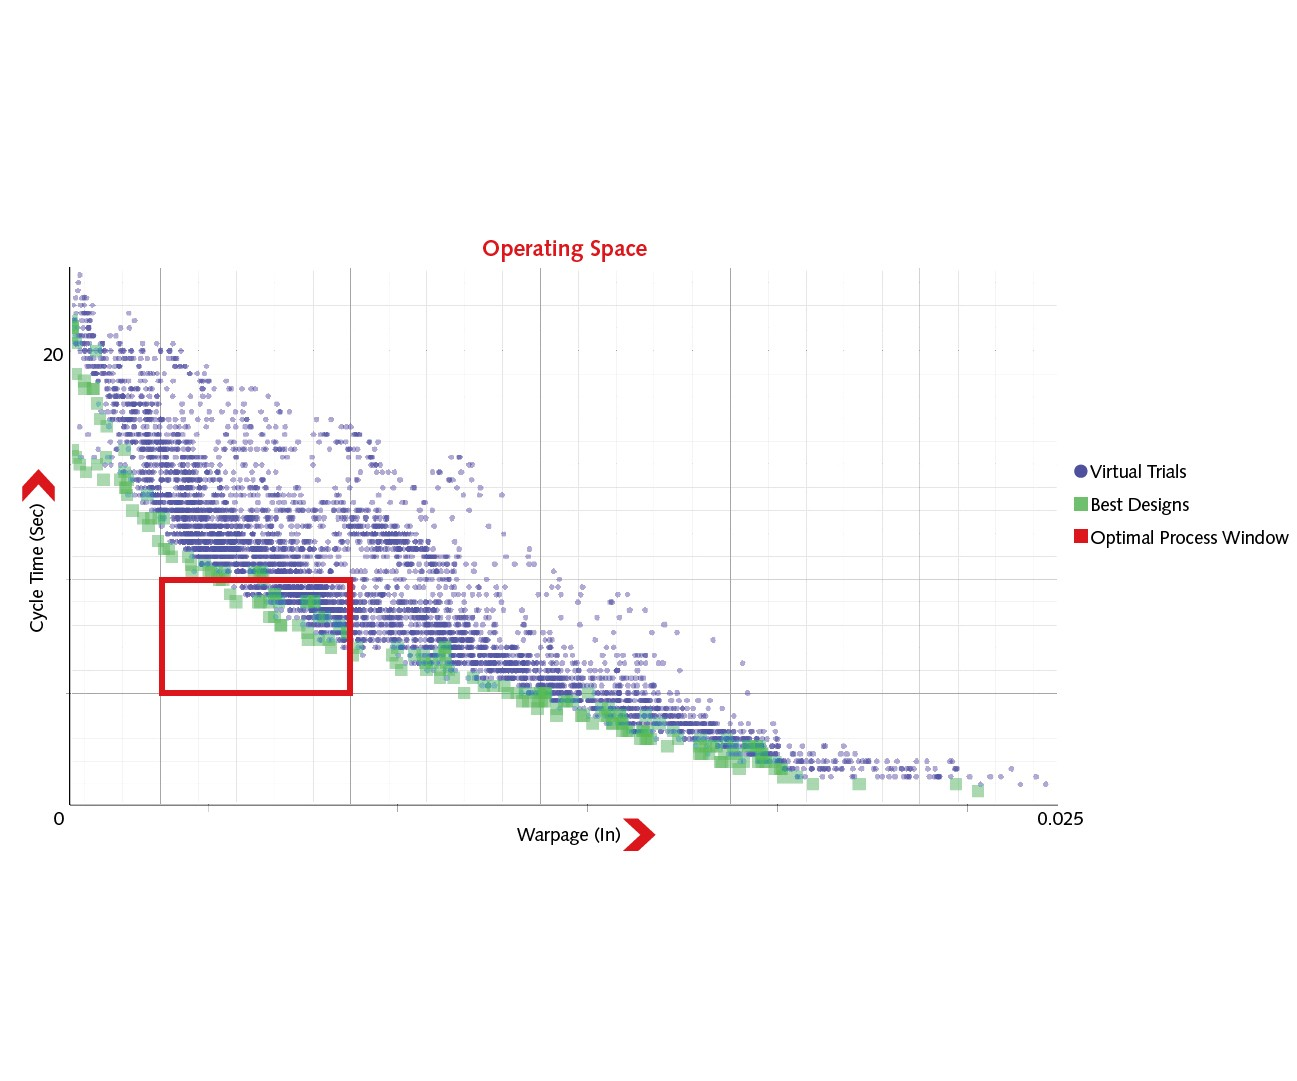 Autonomous Optimization software automatically performs hundreds or thousands of simulations within a predetermined operating space to help find the optimum balance of desired results.